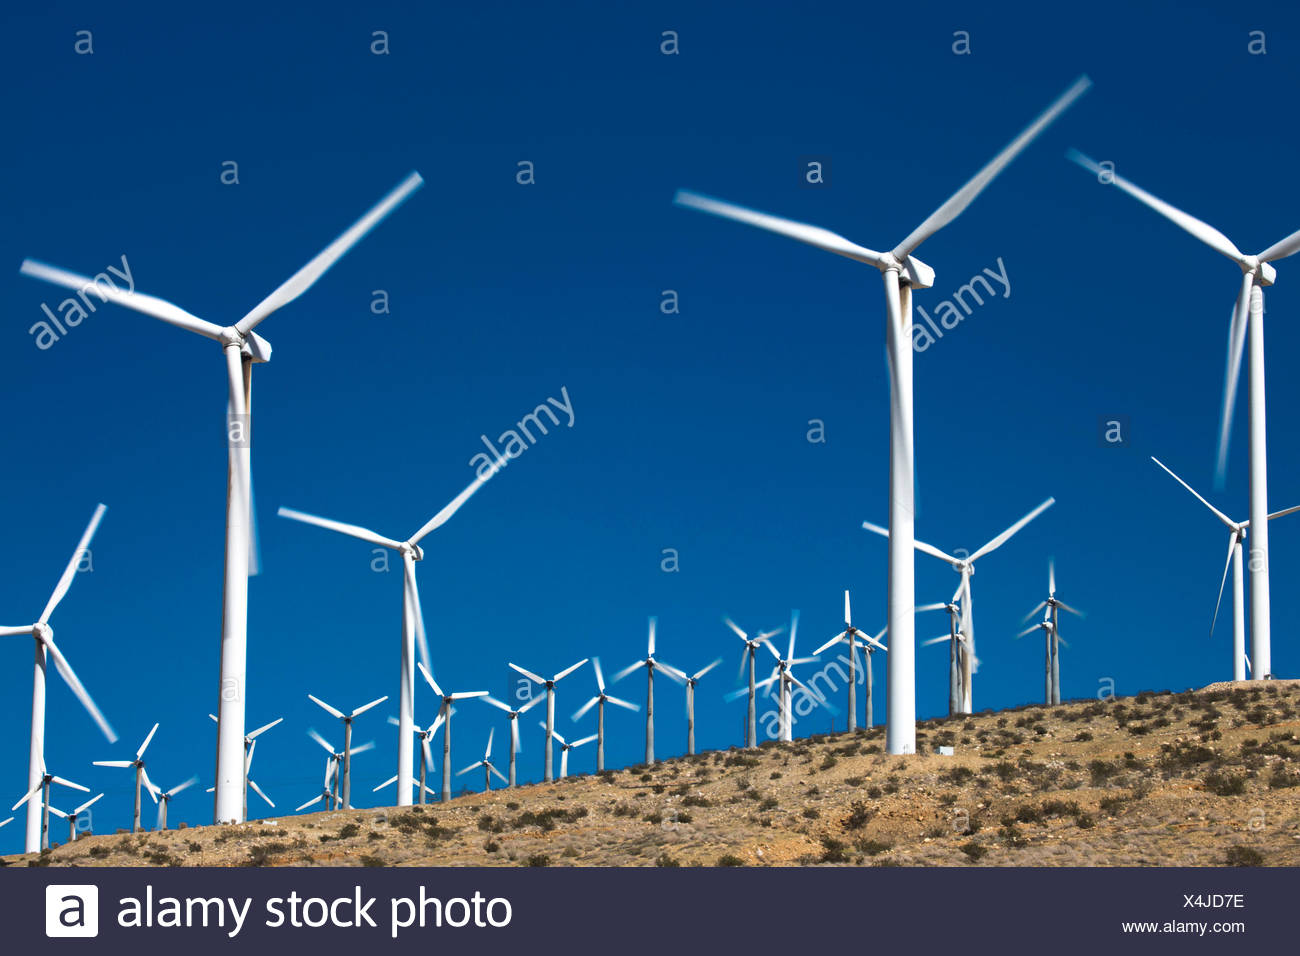 A portion of the more than 3,000 wind turbines at the San Gorgonio Pass Wind Farm outside Palm Springs, California. The Riverside County facility was developed beginning in the 1980s, and is one of three major wind farms in the state. - Stock Image